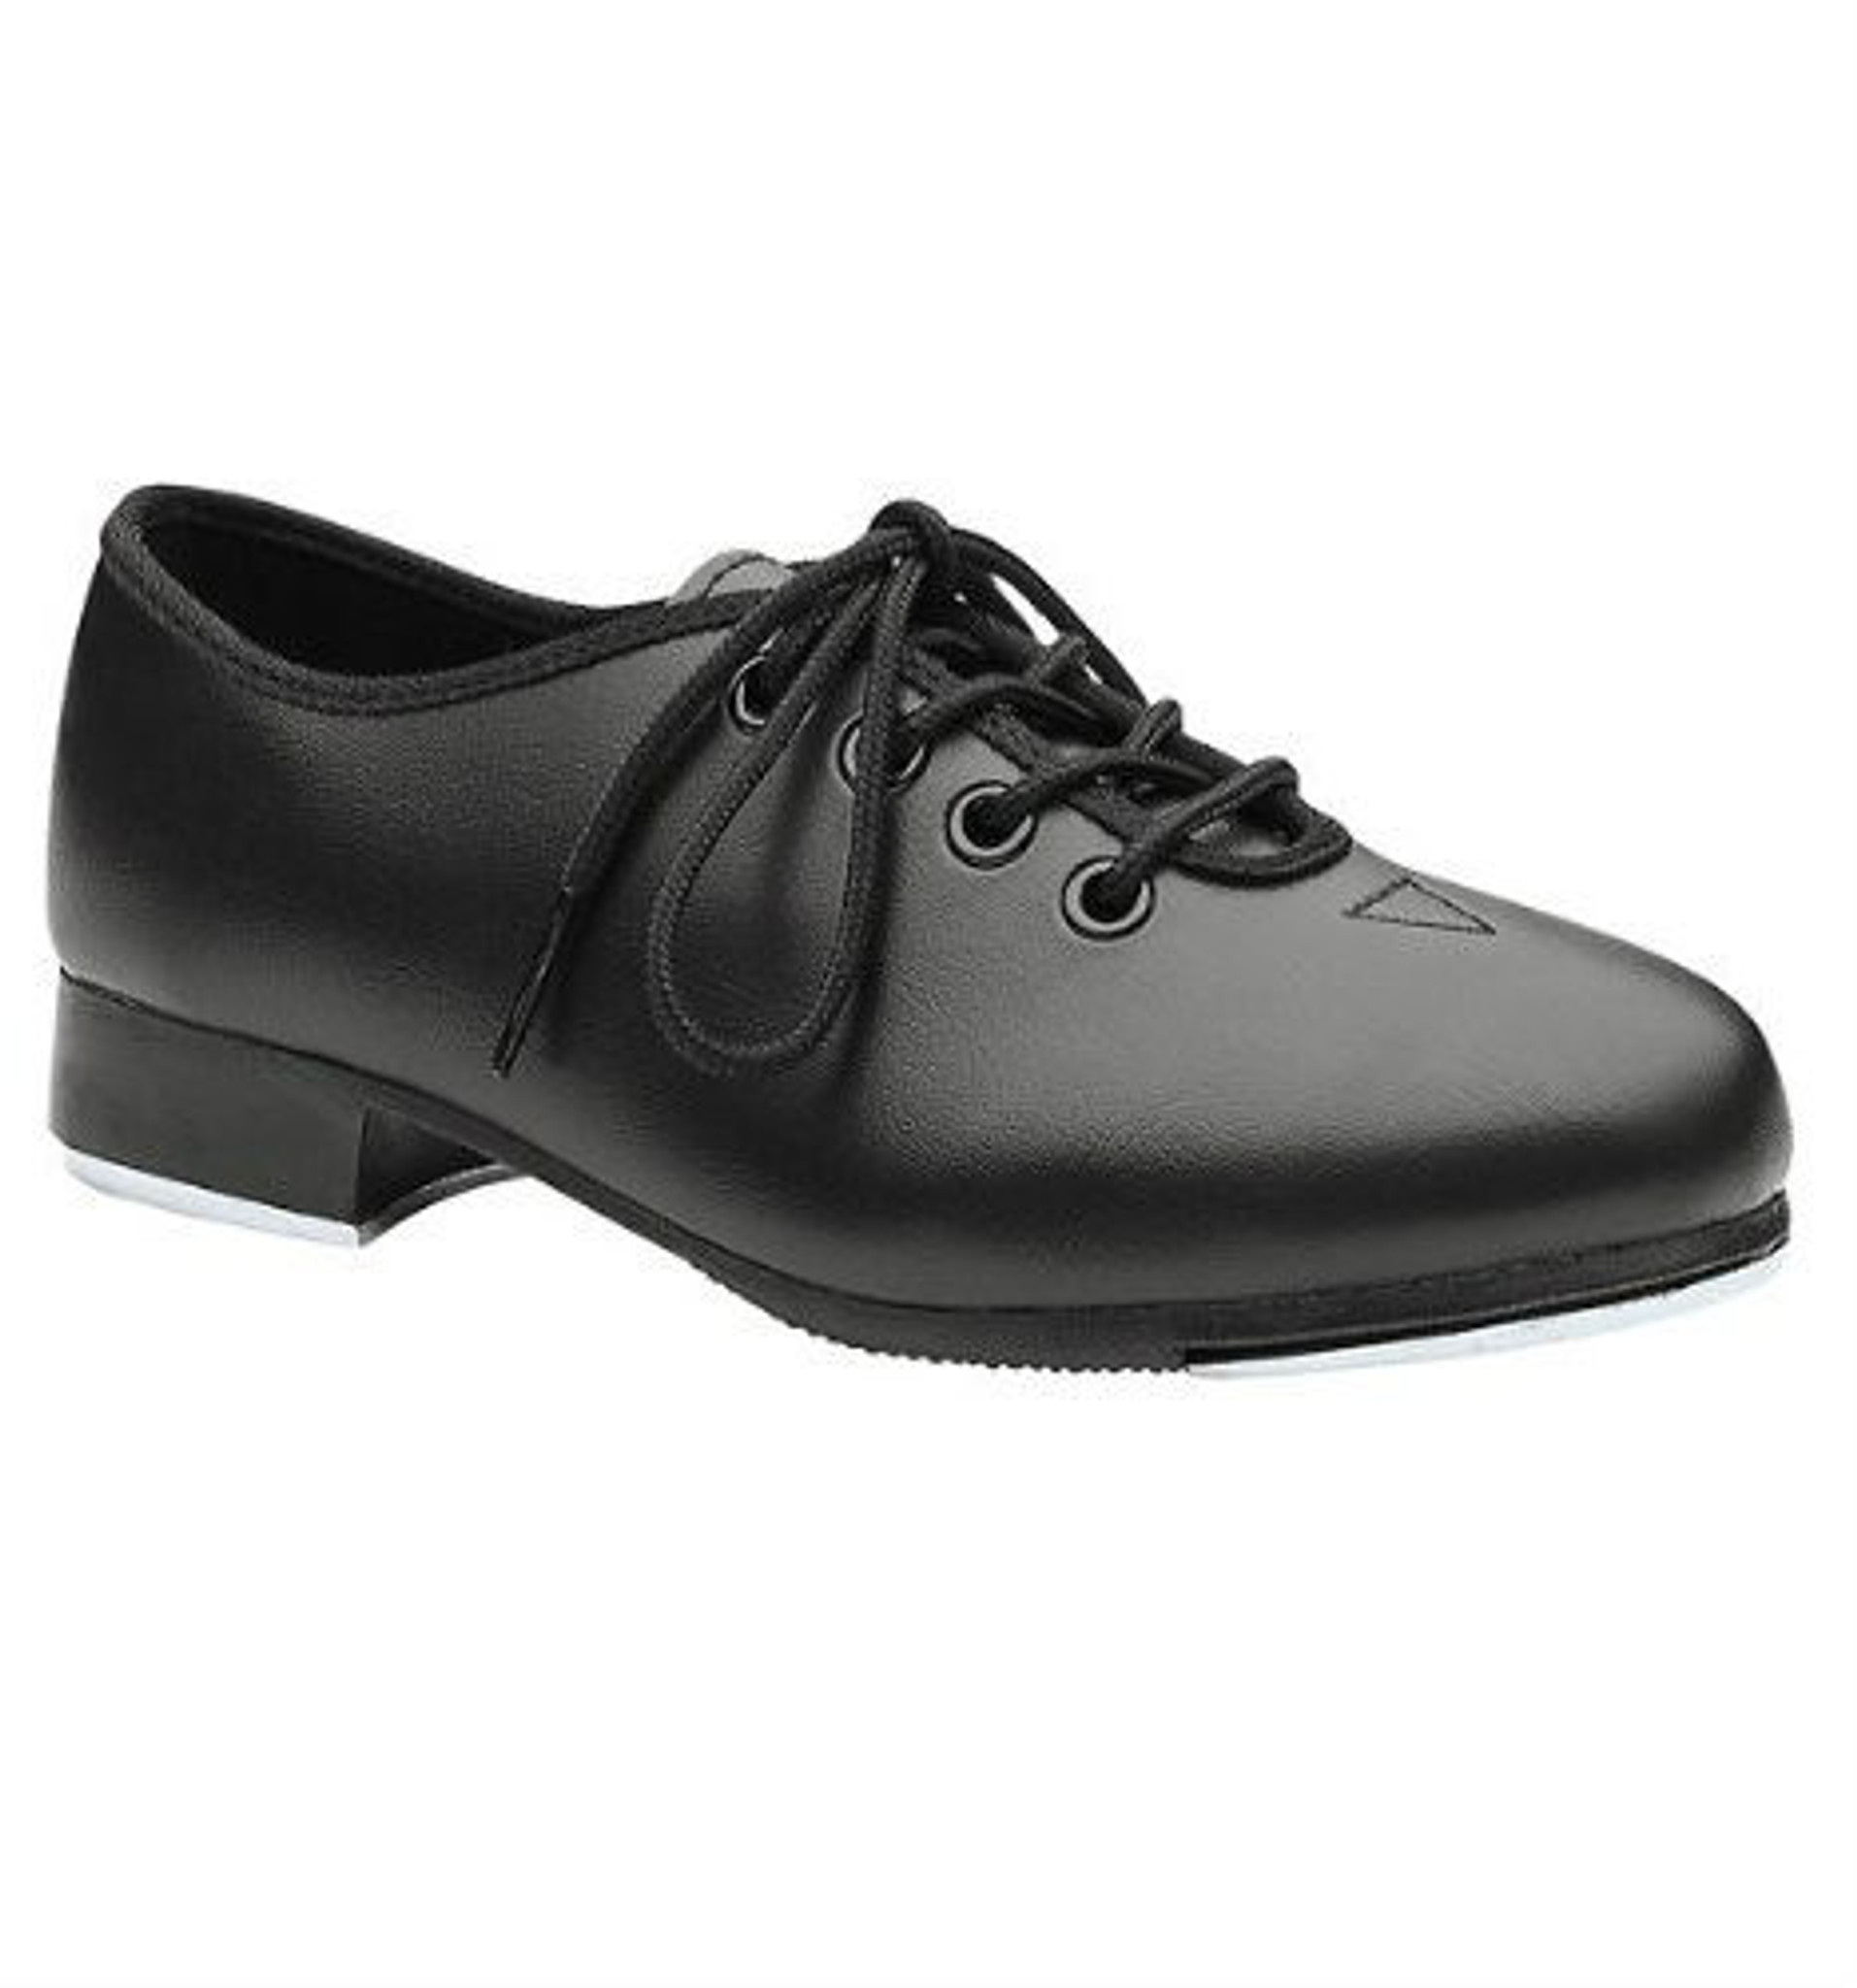 autumn shoes amazing selection cute Dance Now Student Full Sole Jazz Tap Shoe